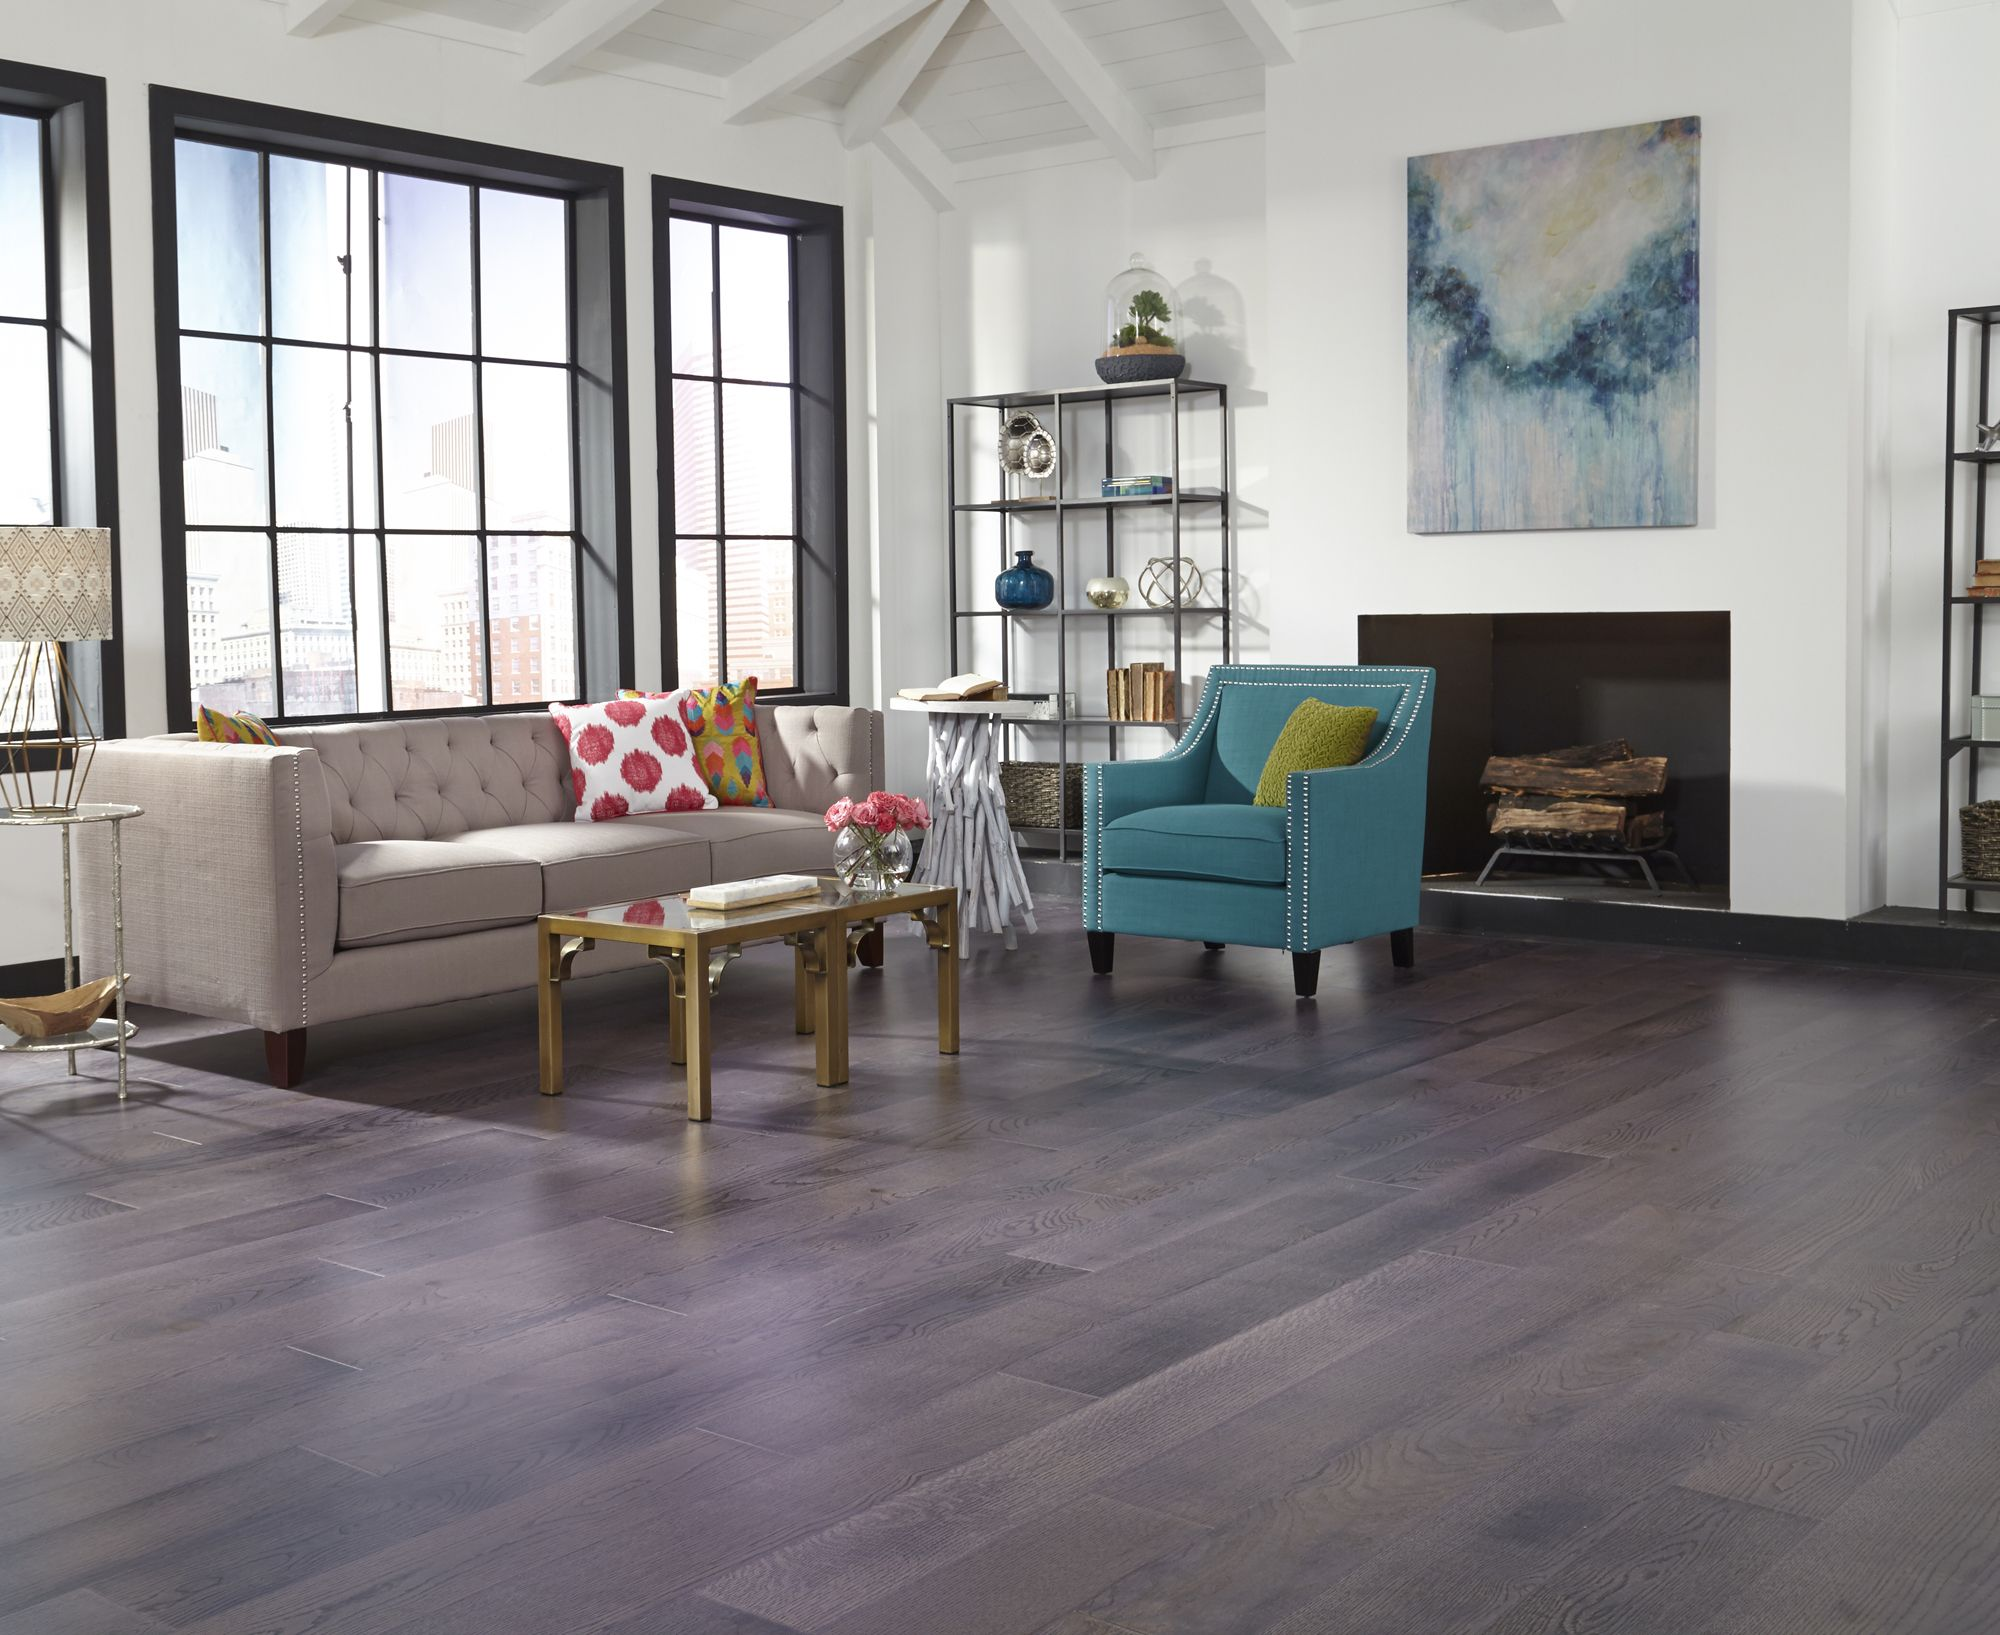 Currently We Like Rustic Hardwood Flooring We Are Doing A Lot Of Gray Wood Flooring With A Lo Flooring Trends Rustic Hardwood Floors Living Room Arrangements